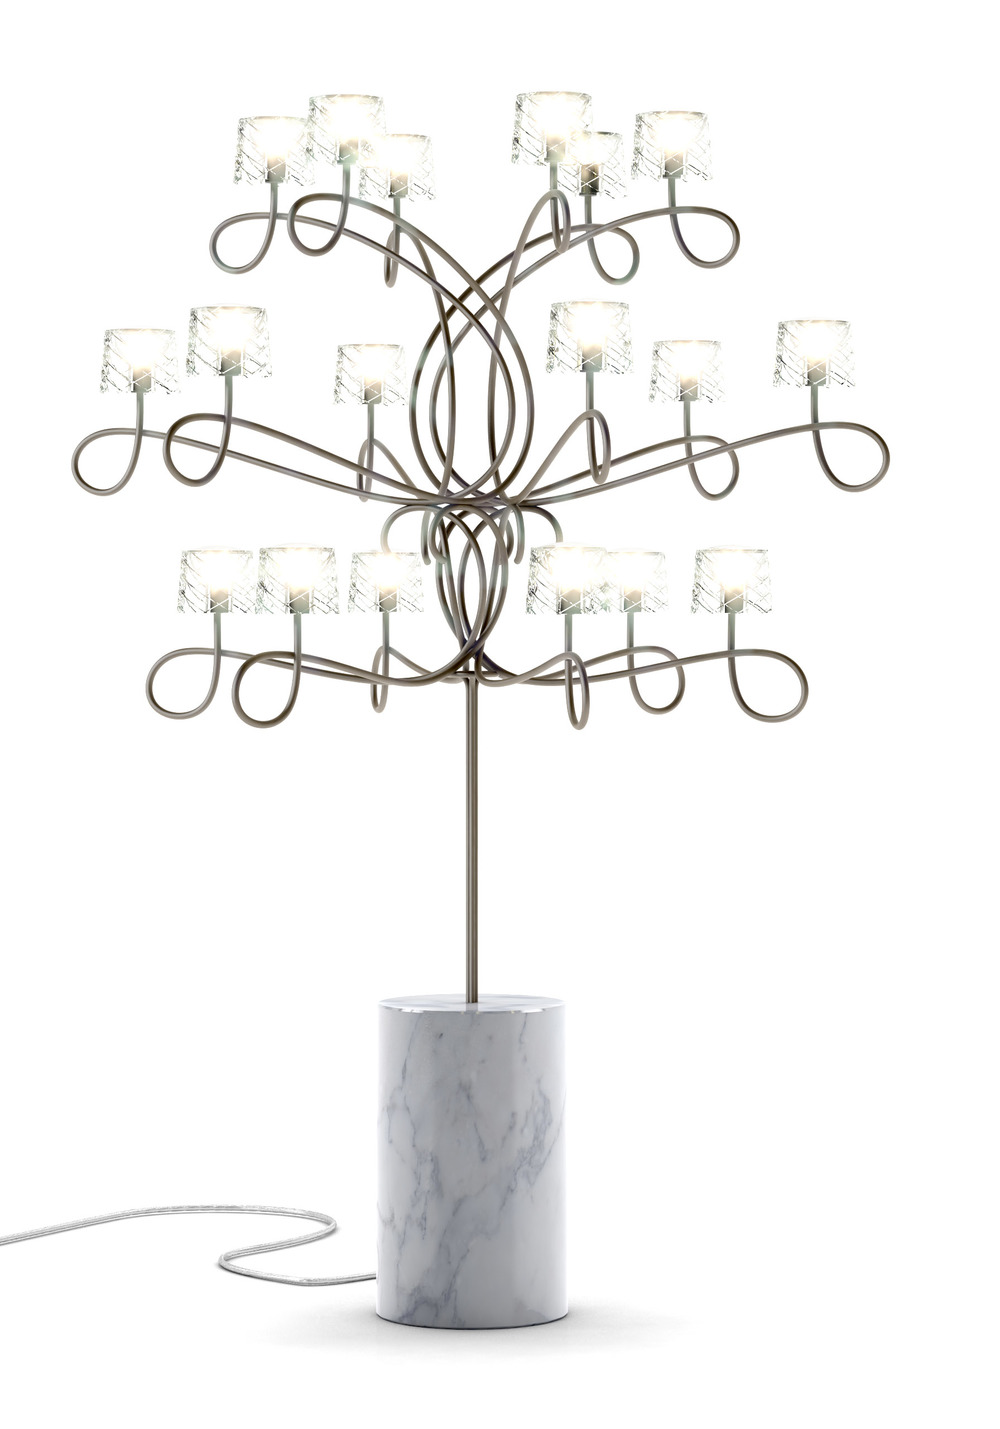 Inkborn table lamp / Marcel Wanders